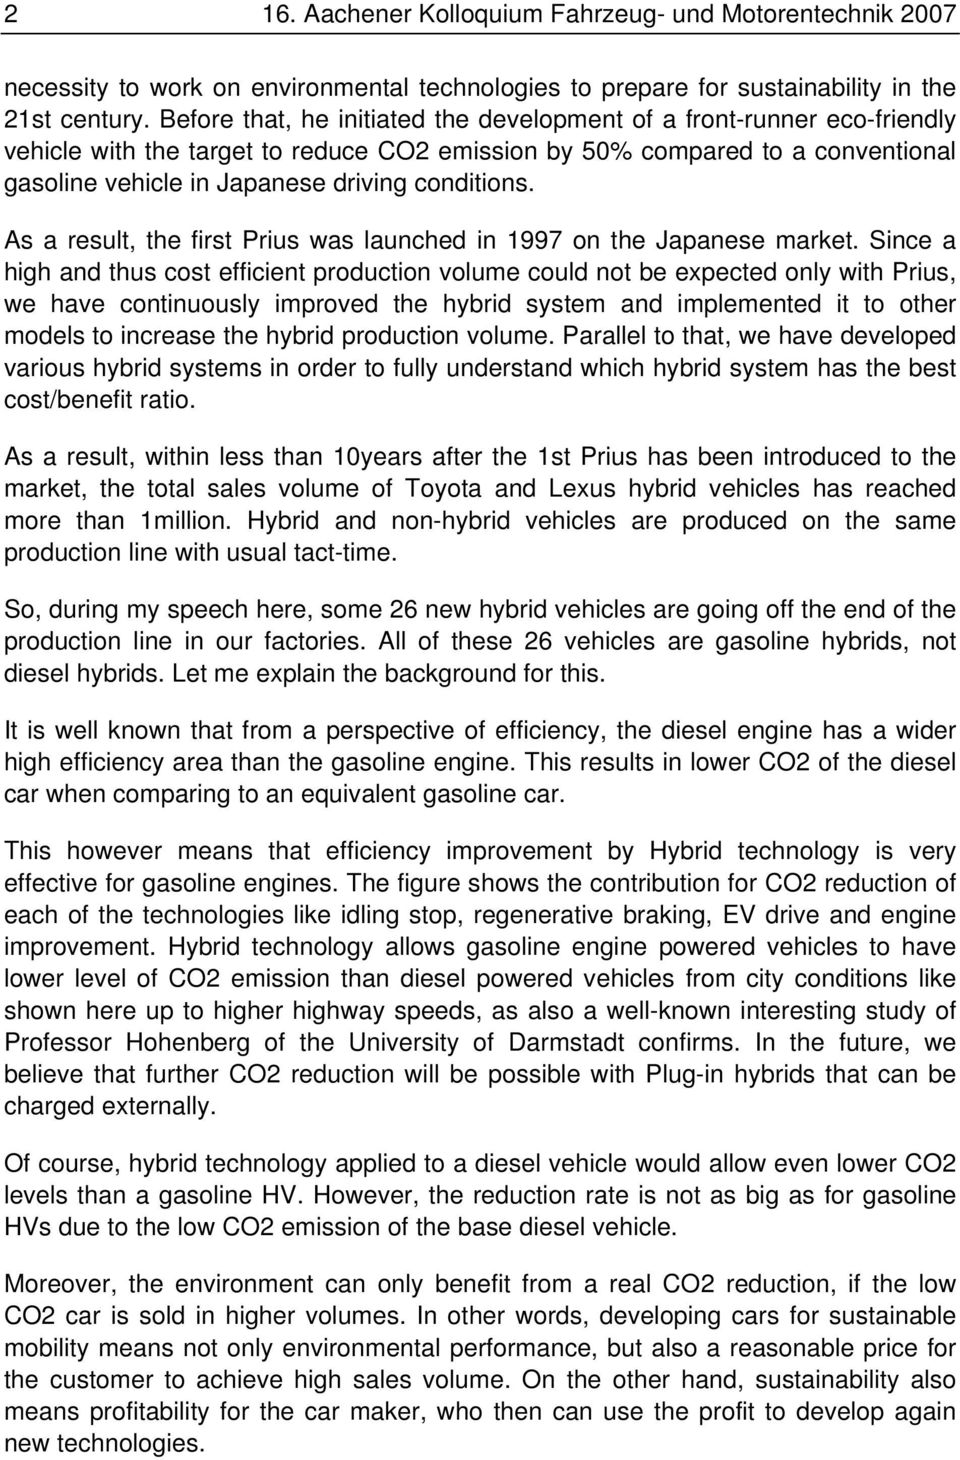 conditions. As a result, the first Prius was launched in 1997 on the Japanese market.